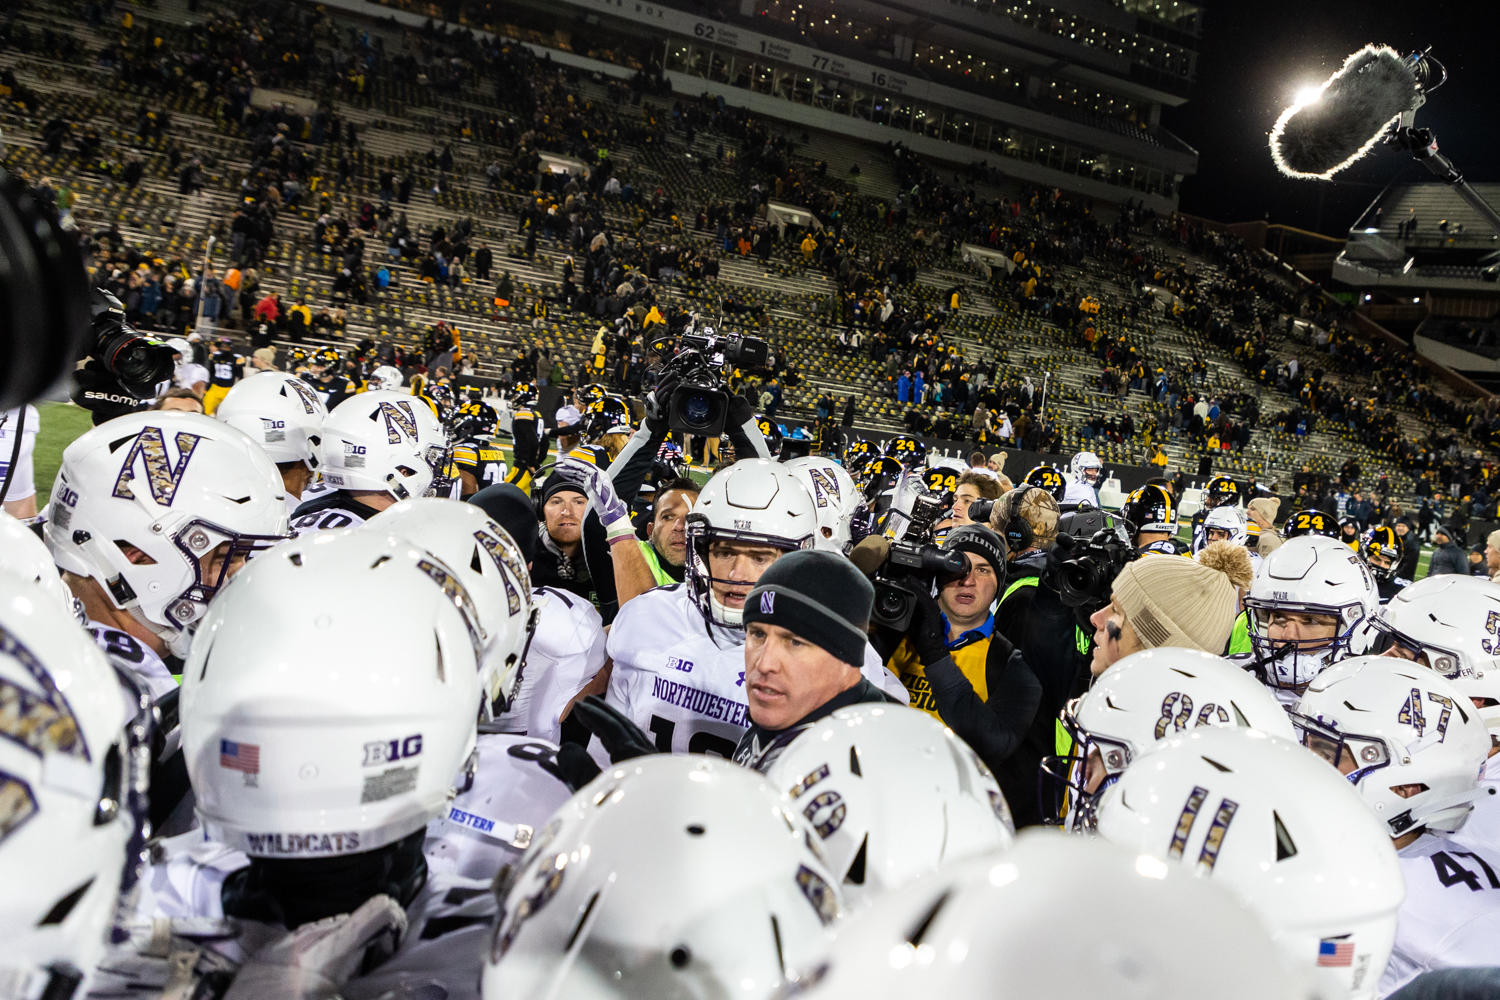 Northwestern+head+coach+Pat+Fitzgerald+addresses+his+team+at+midfield+after+a+game+against+Iowa+on+Saturday%2C+Nov.+10%2C+2018+at+Kinnick+Stadium+in+Iowa+City.+The+Wildcats+defeated+the+Hawkeyes+14-10.+%28David+Harmantas%2FThe+Daily+Iowan%29